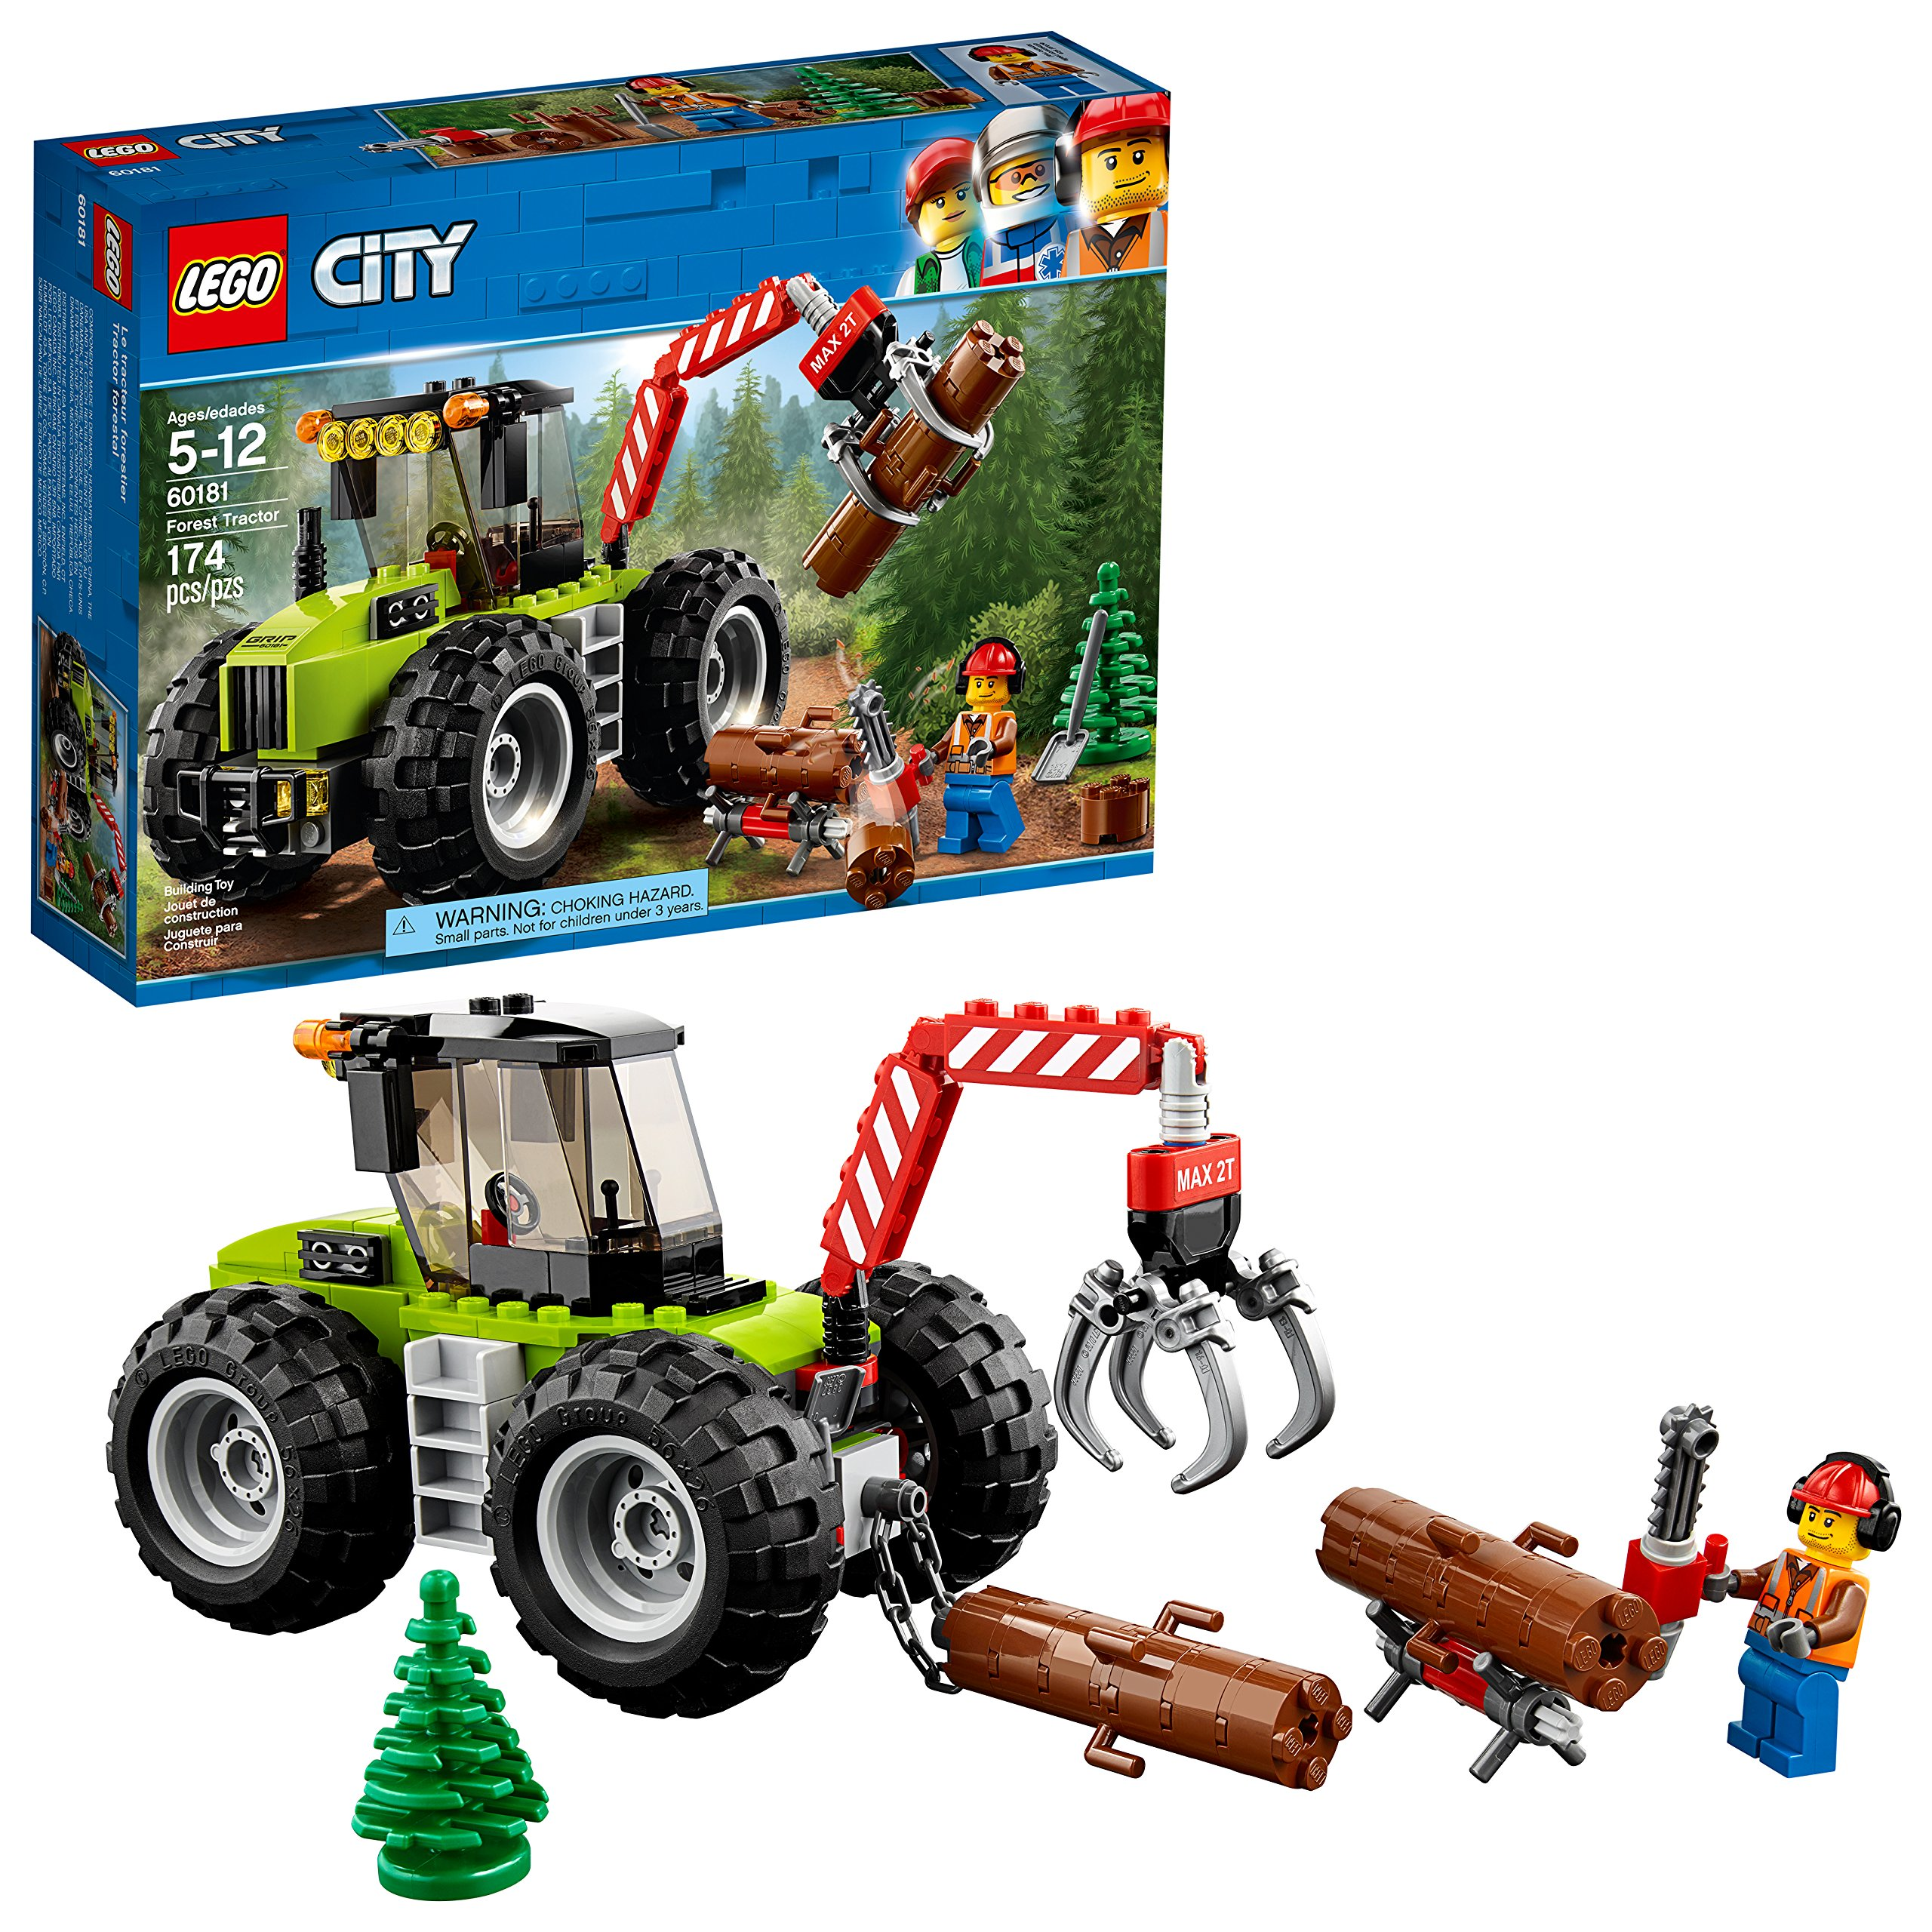 LEGO City Forest Tractor 60181 Building Kit (174 Piece) by LEGO (Image #1)